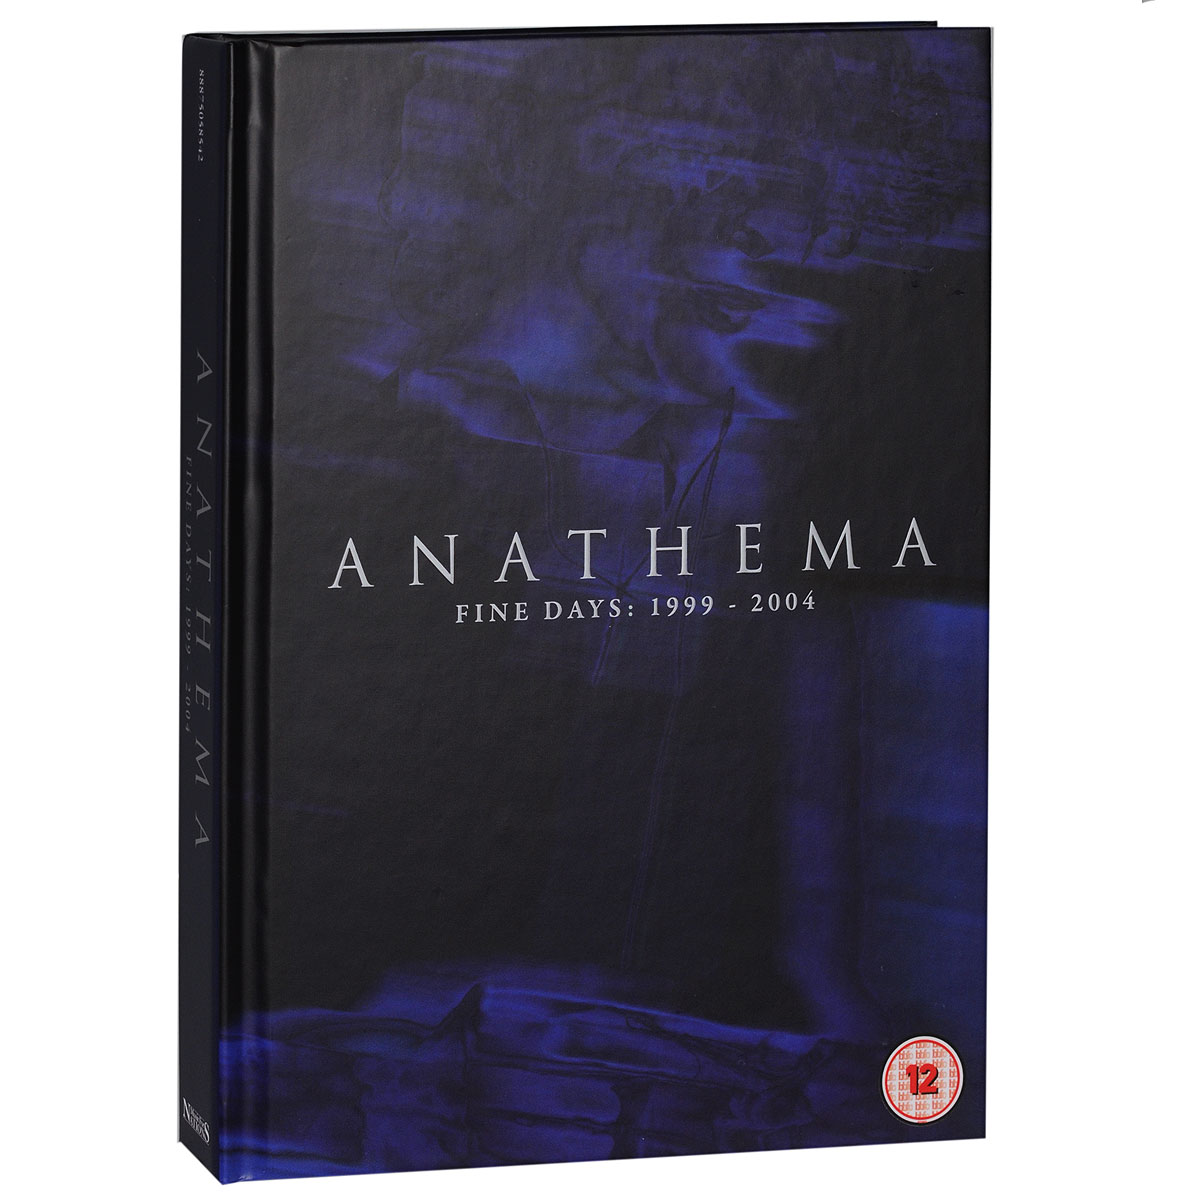 Anathema Anathema. Fine Days. 1999-2004 (3 CD + DVD) cd диск the doors strange days 40th anniversary 1 cd